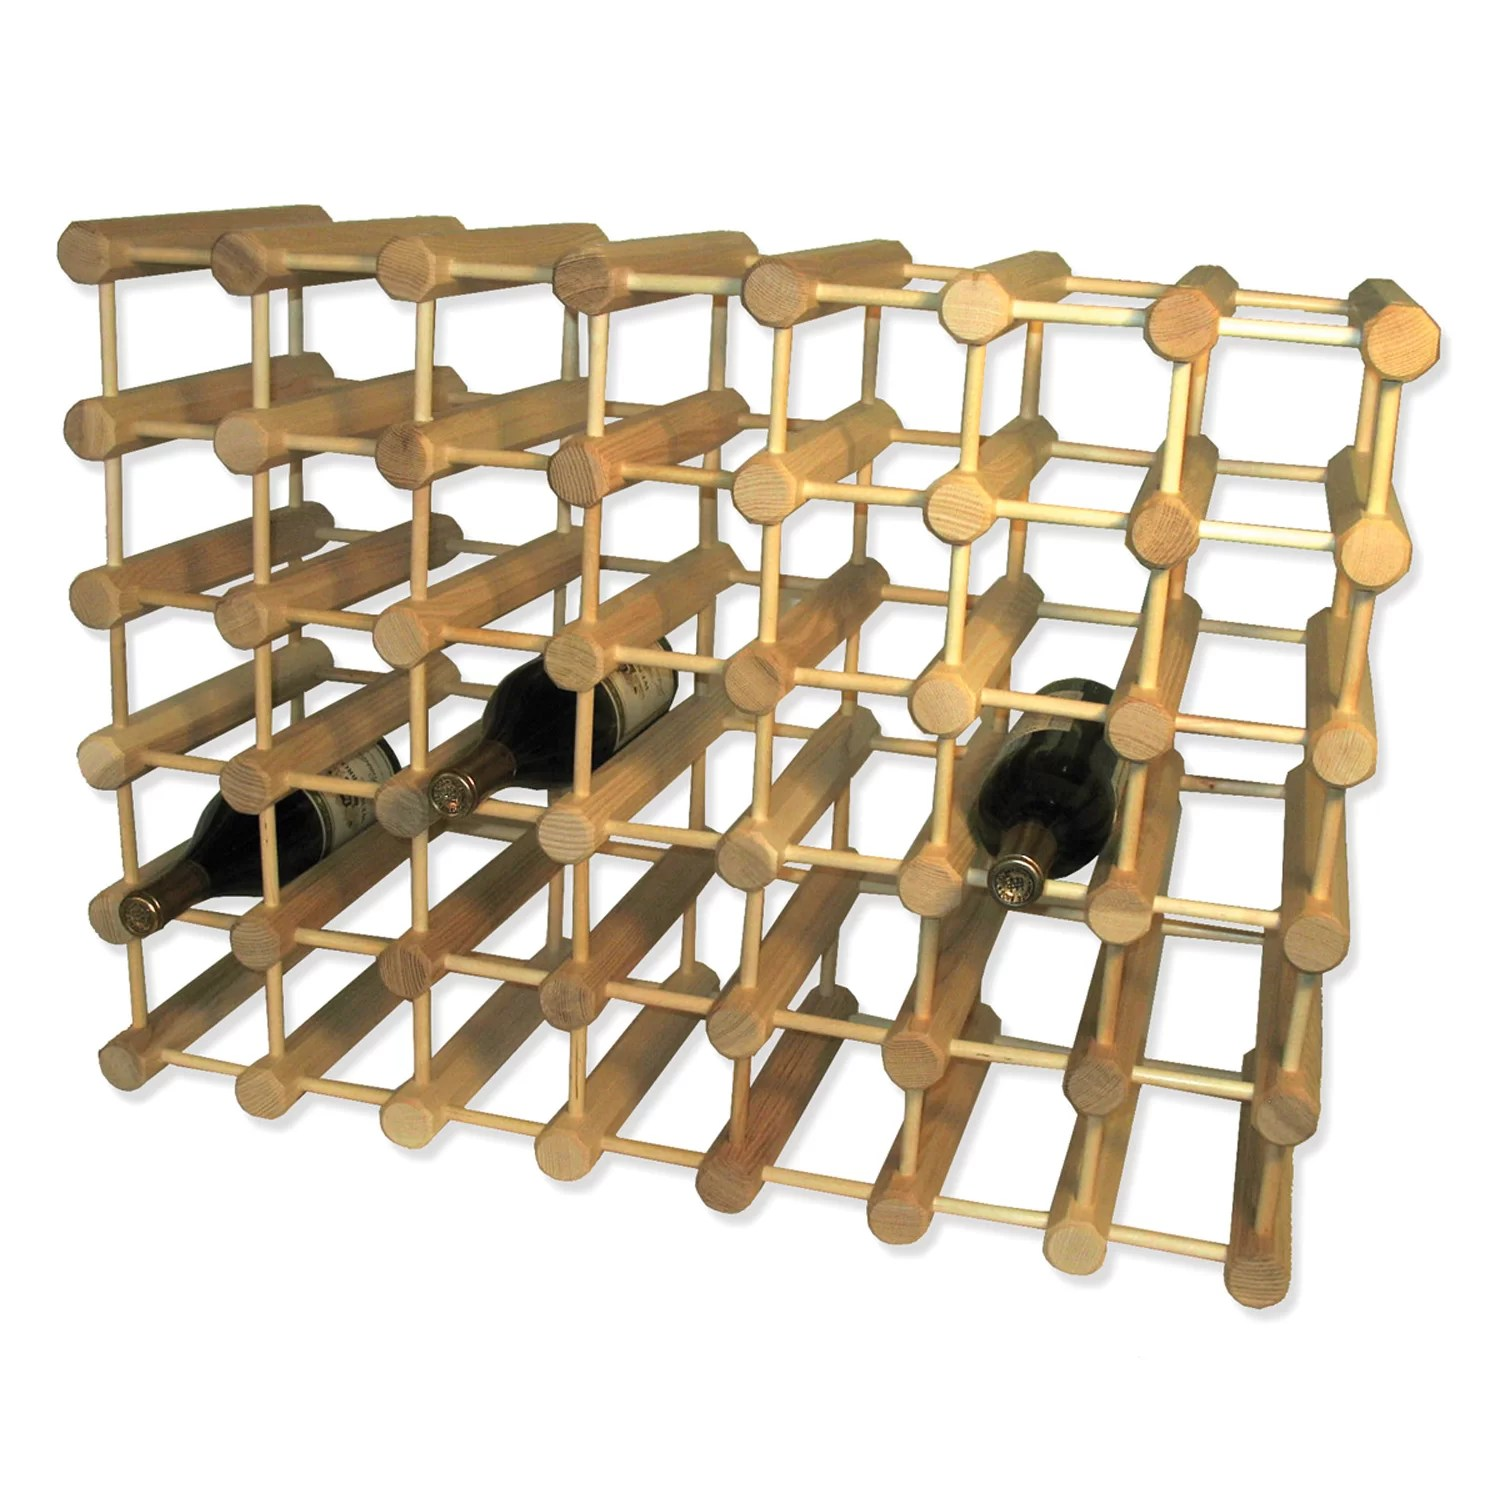 In Floor Wine Storage J K Adams 40 Bottle Floor Wine Rack And Reviews Wayfair